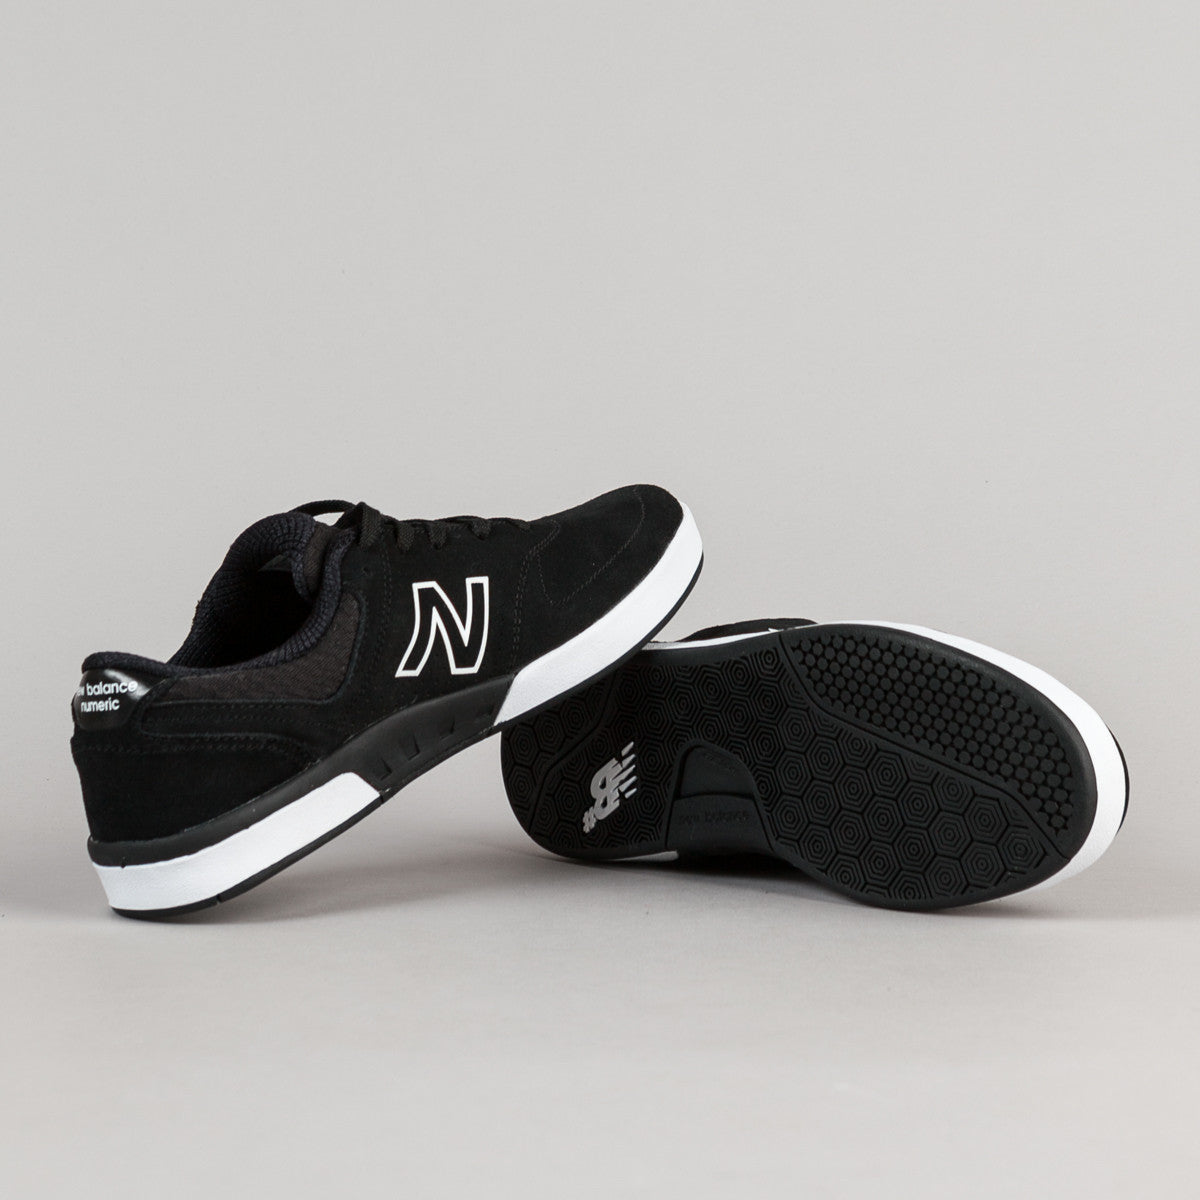 New Balance Numeric PJ Stratford 533 Shoes - Black